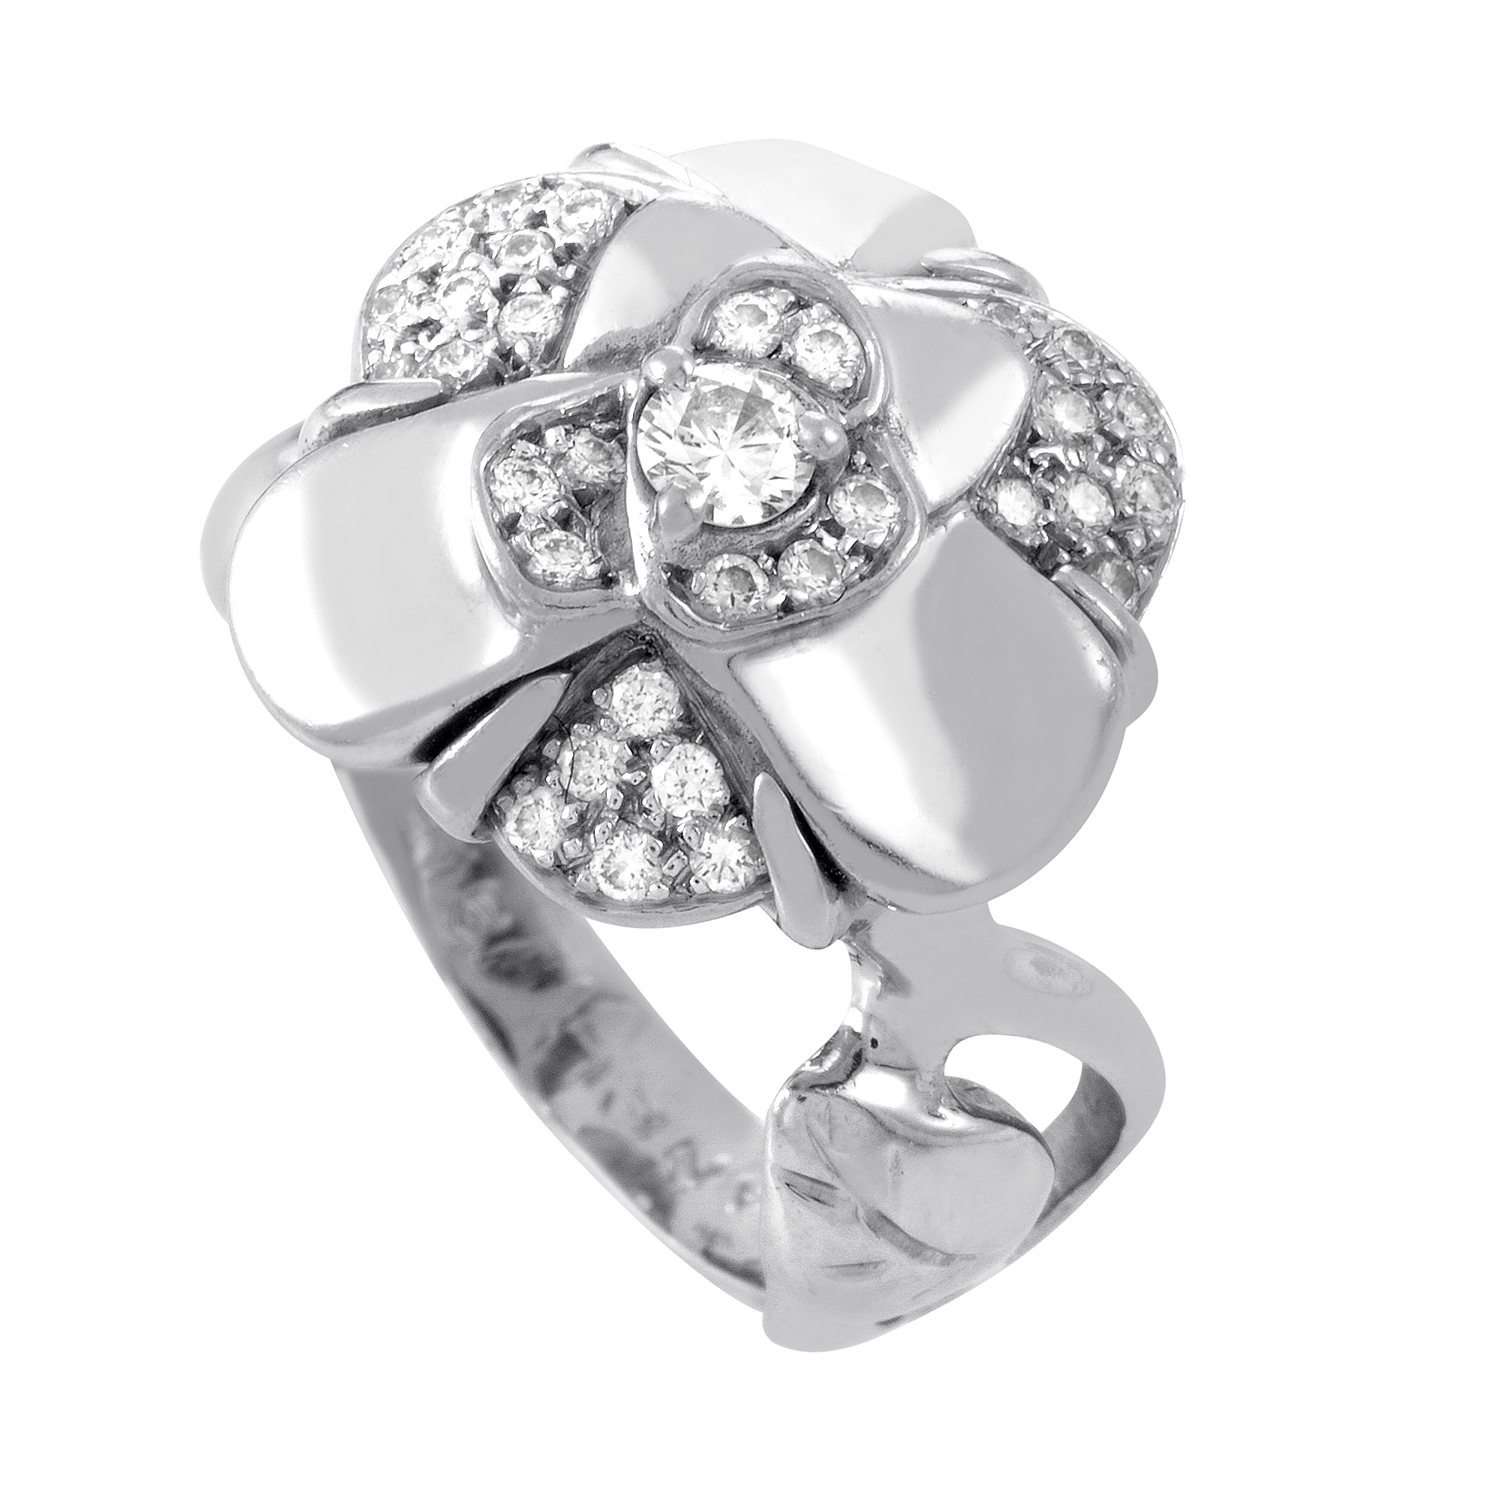 Chanel Camelia 18K White Gold Partial Pave Ring